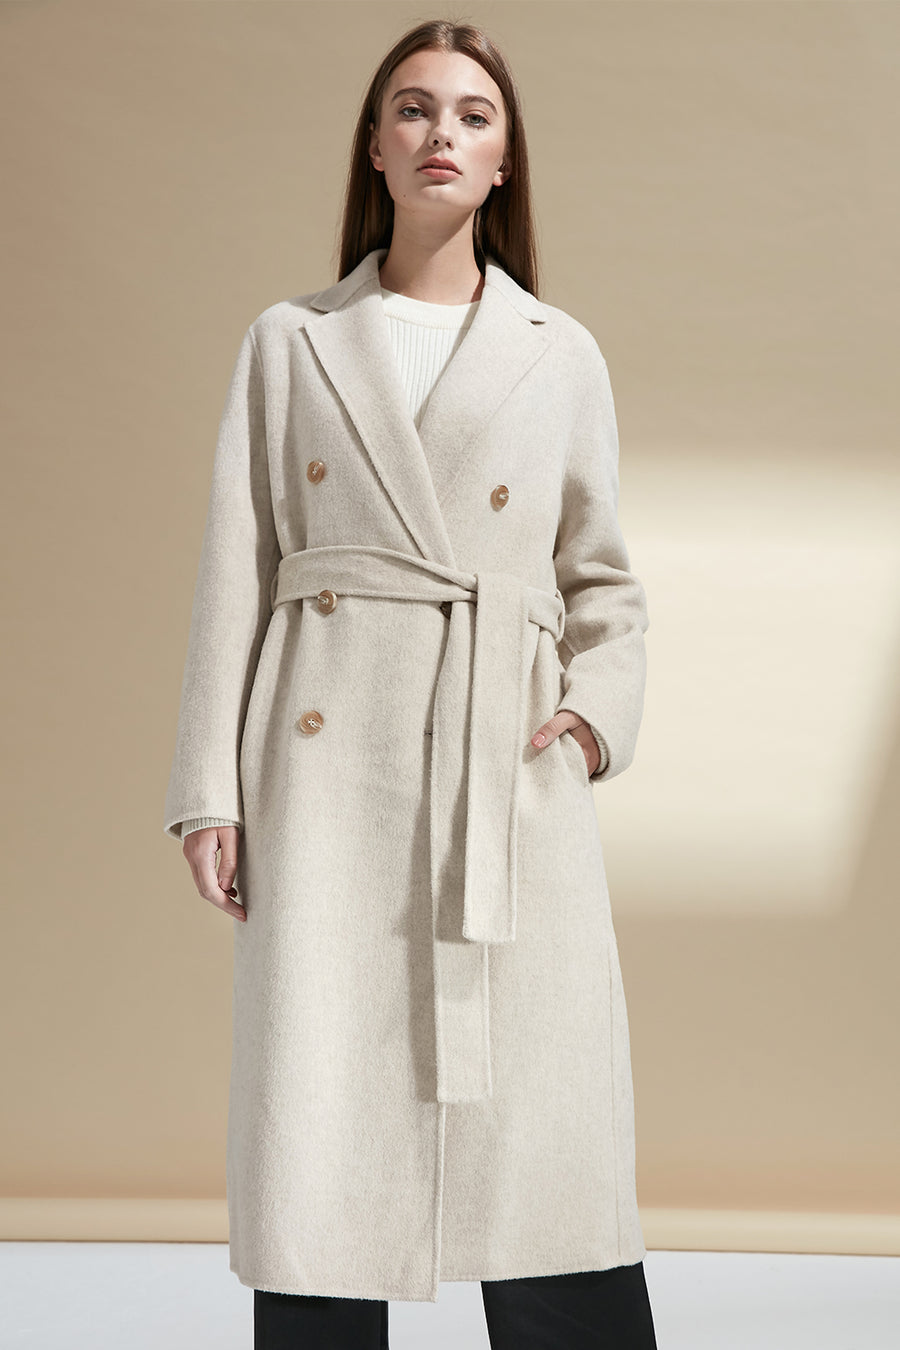 Longline double-breasted wool coat - Zelle Studio